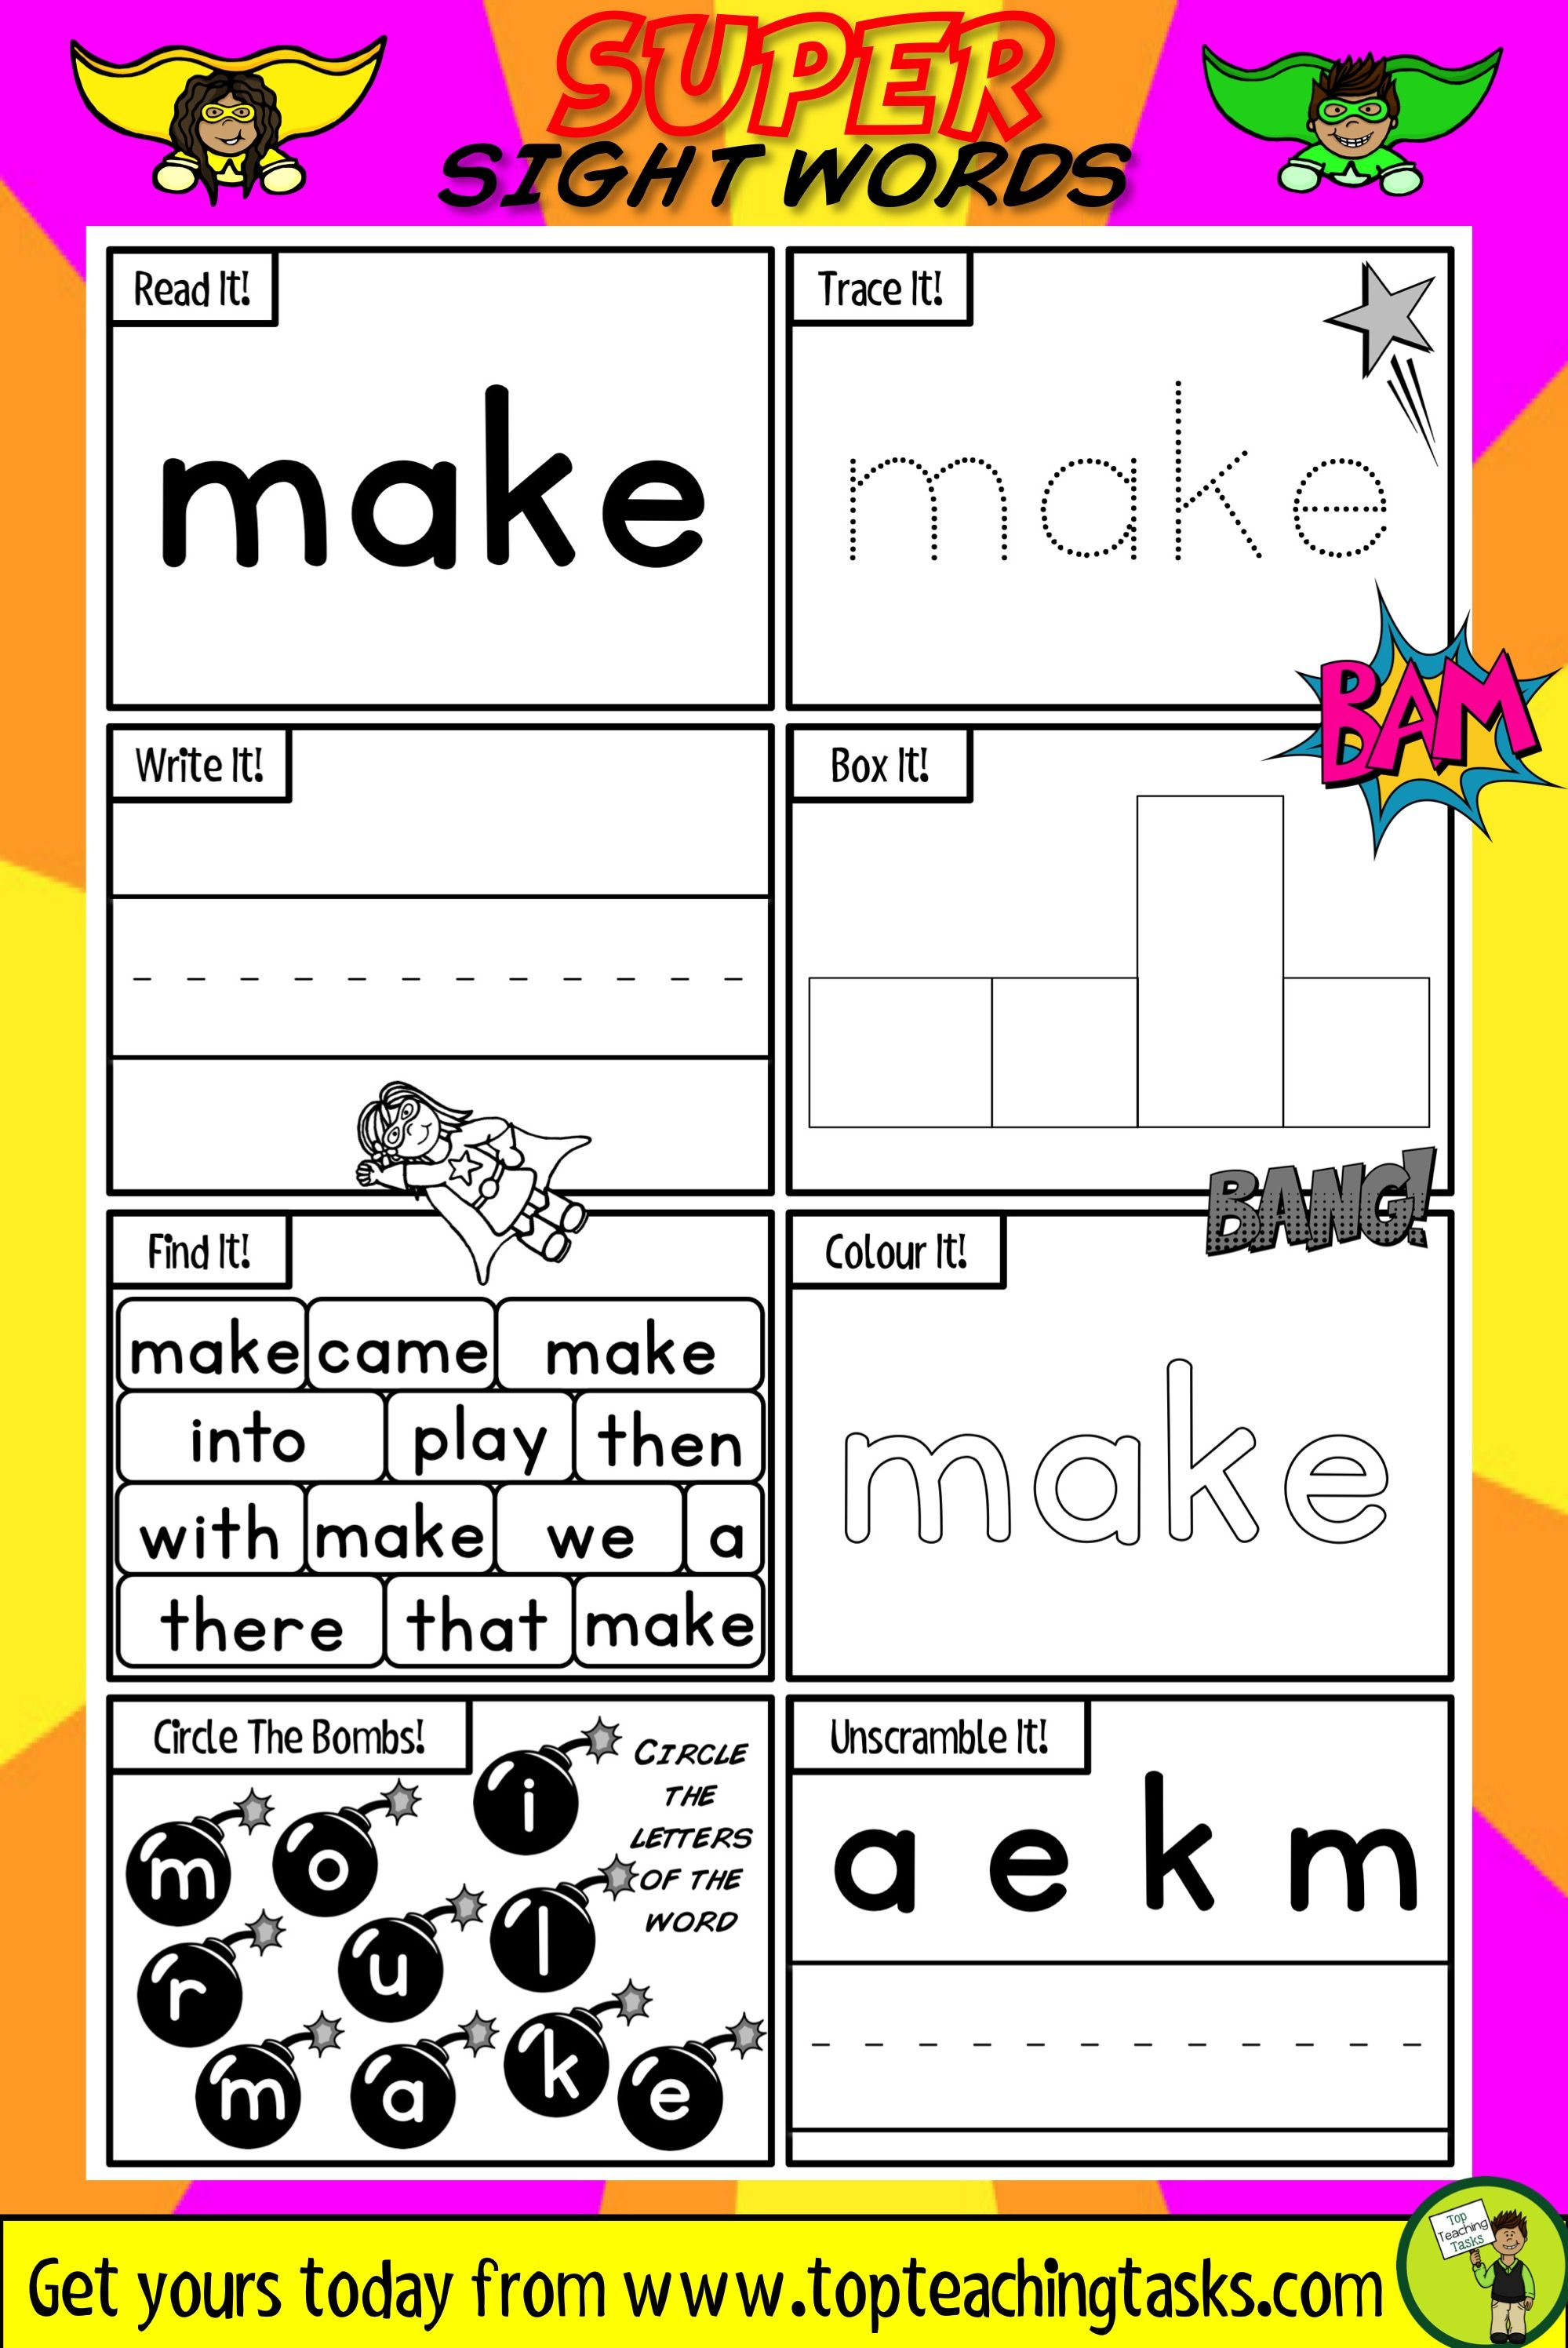 Worksheets Superhero Teacher Worksheets sight words activity sheets color wheels activities and primary classroom